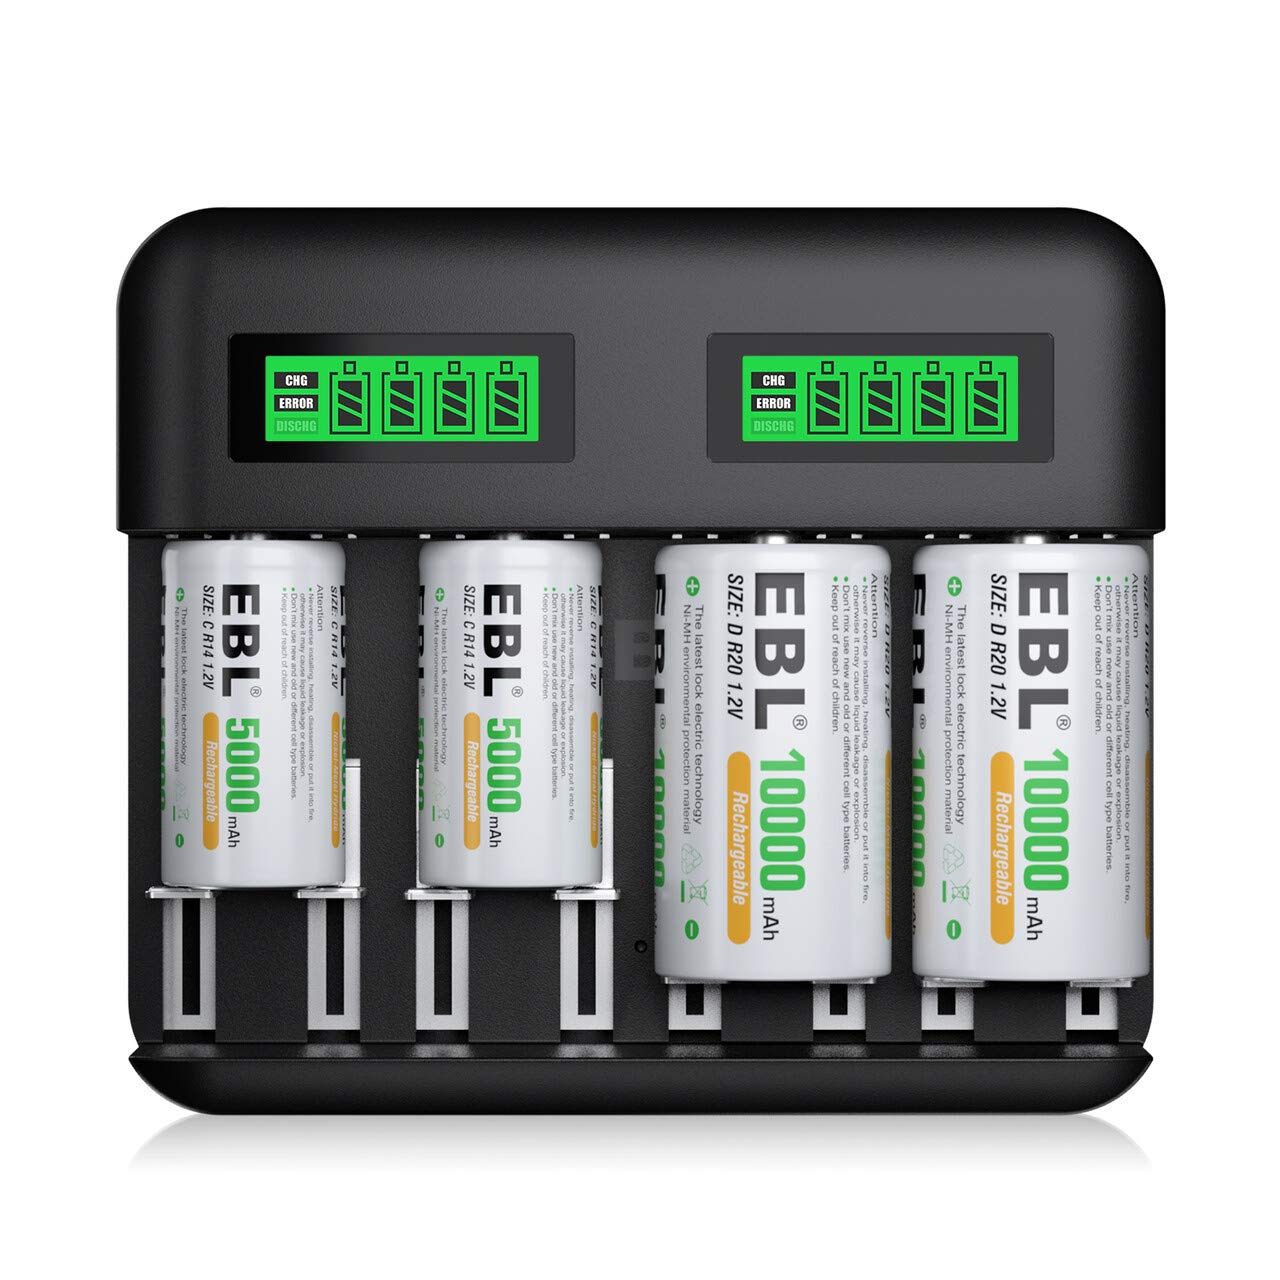 EBL 8-Bay LCD Battery Charger USB Port Type C Input for AA AAA C D Rechargeable Batteries - Rechargeable C Battery 5000mAh × 2, D Battery 10000mAh × 2 and Battery Charger Combo